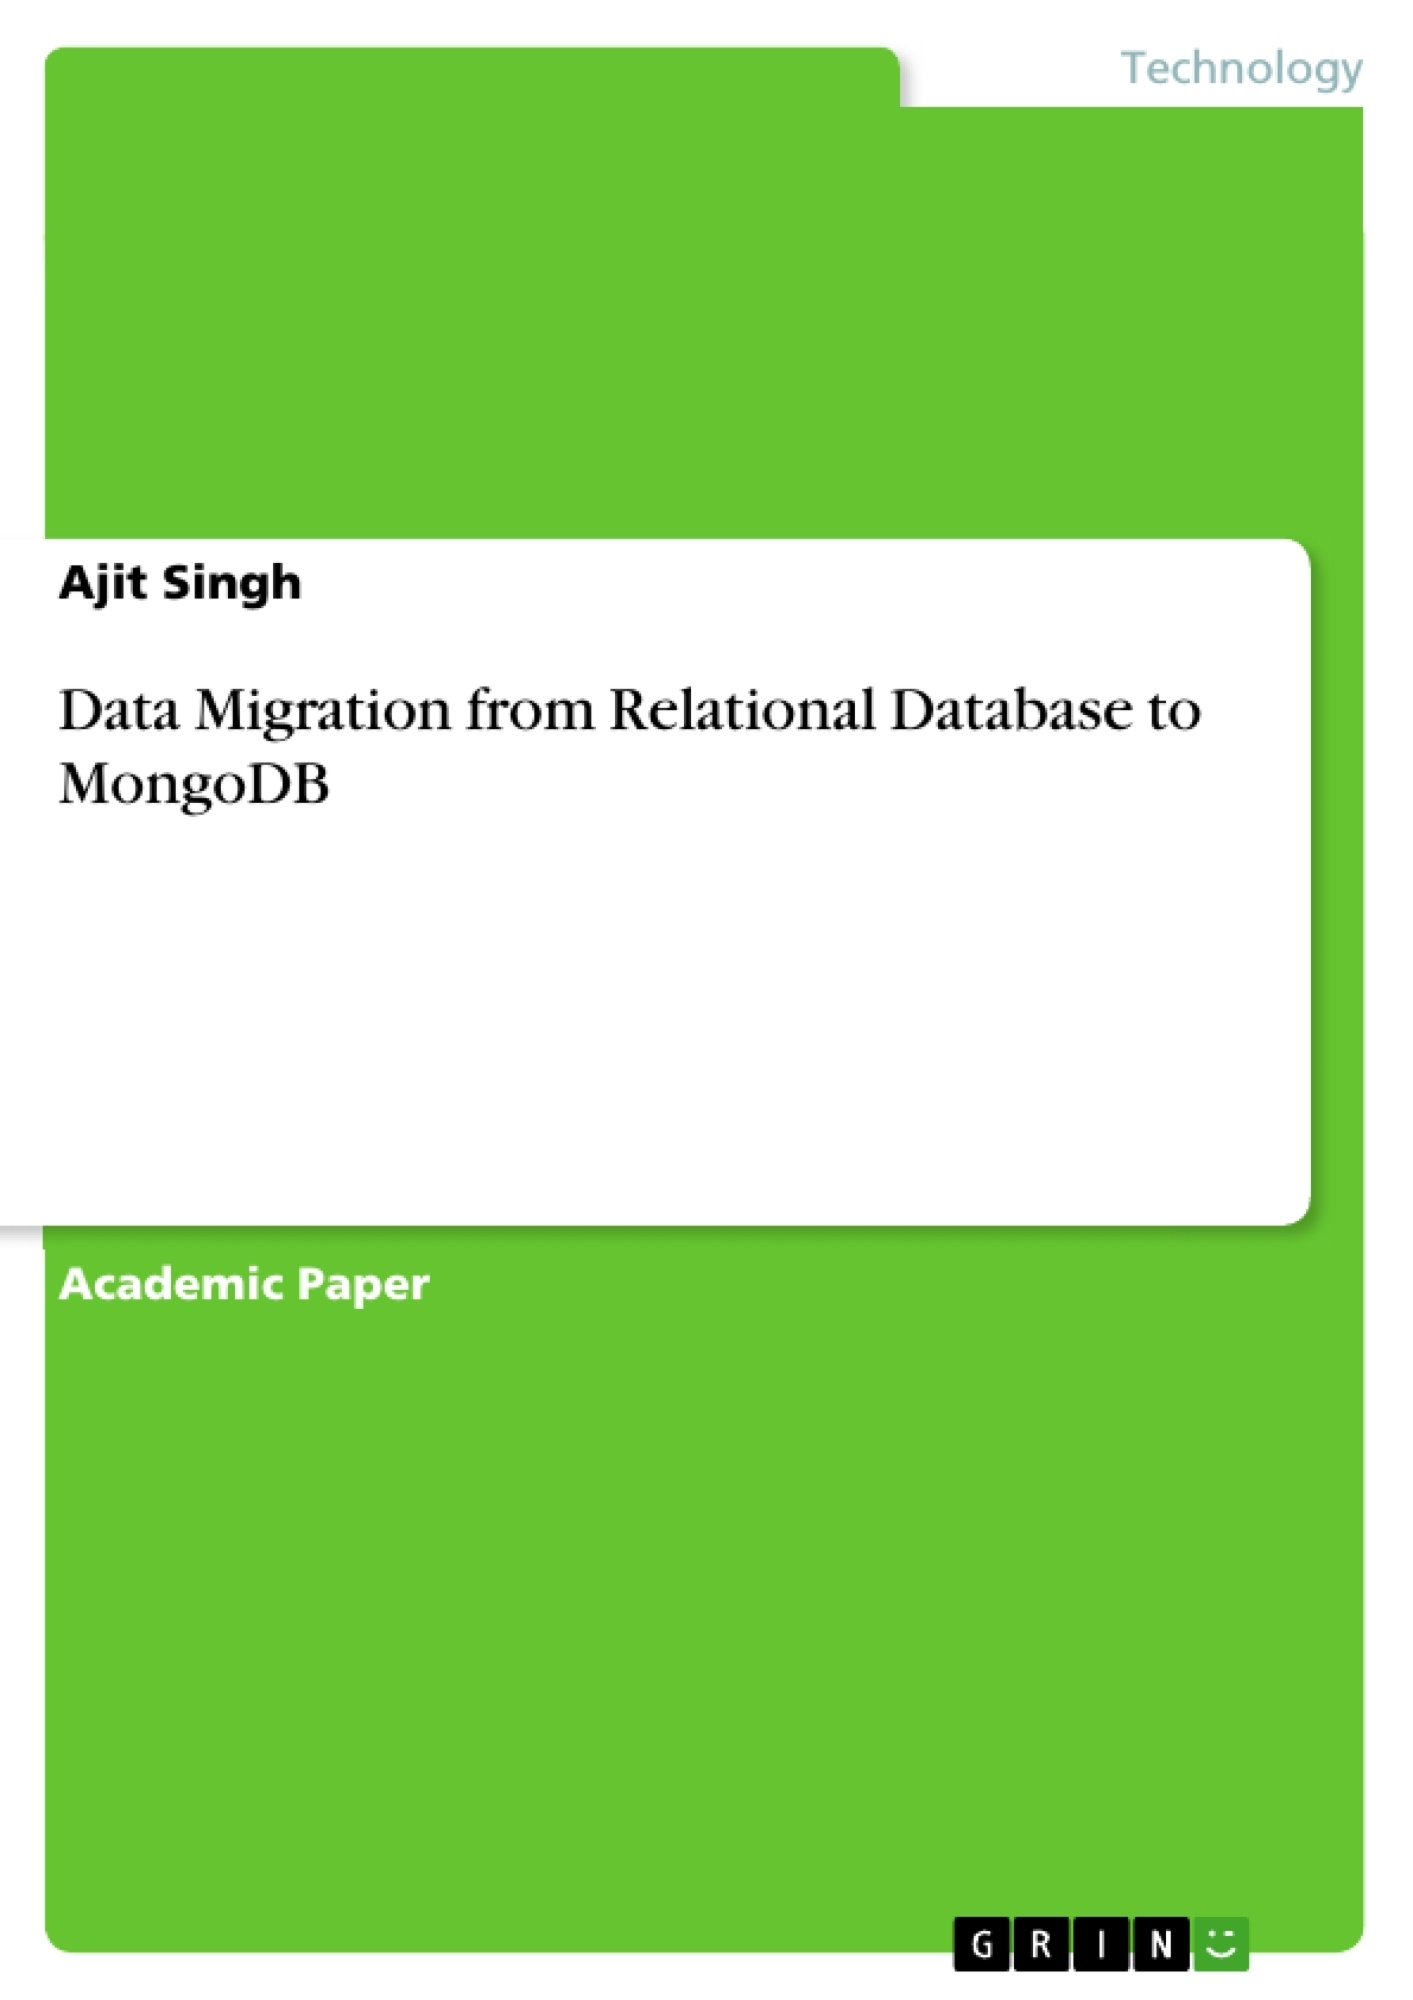 Title: Data Migration from Relational Database to MongoDB